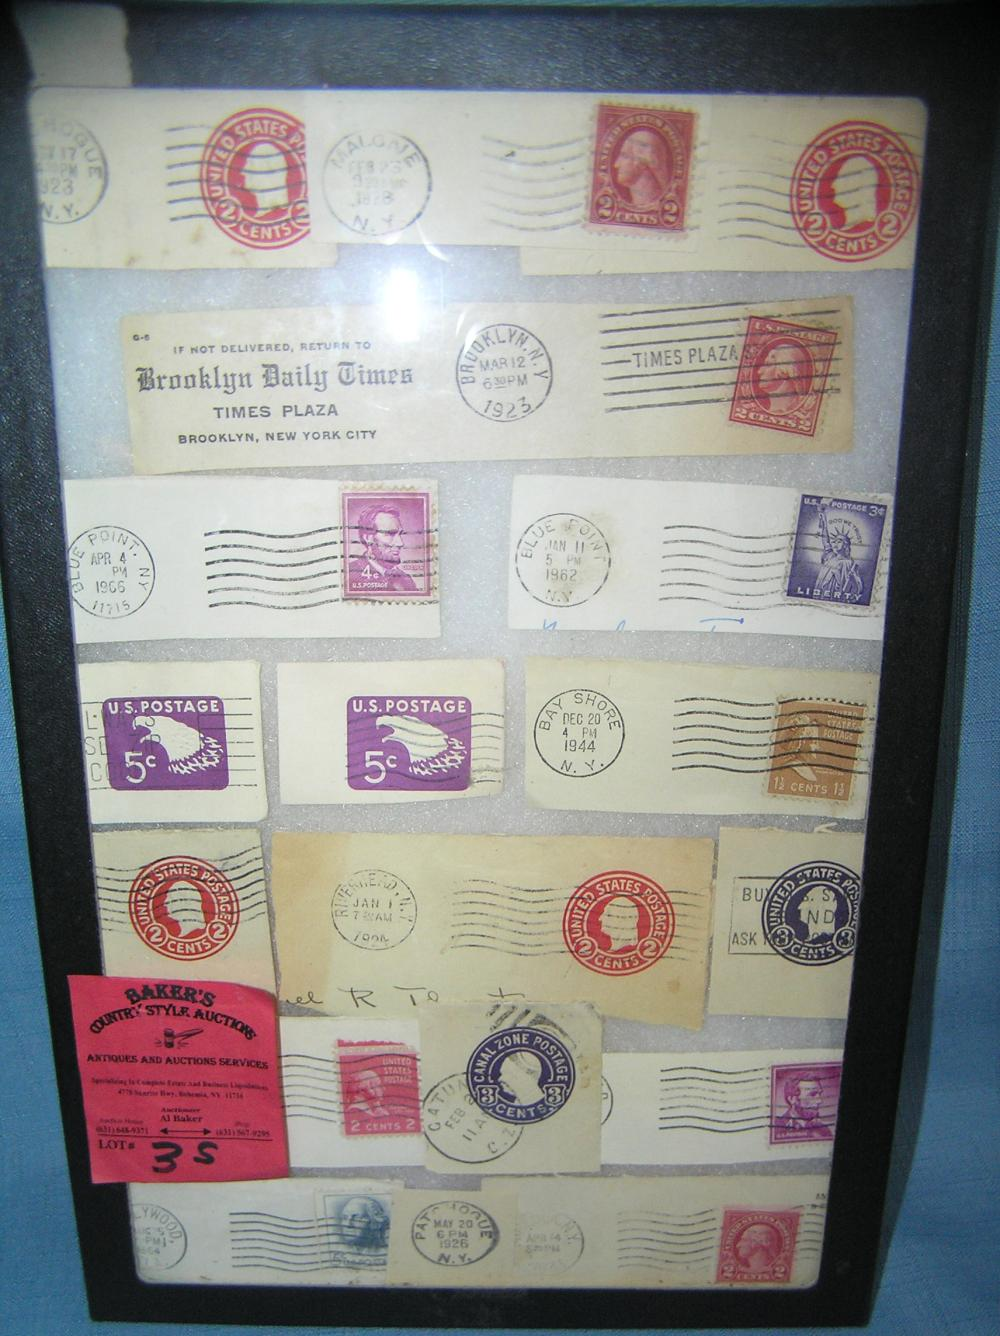 COLLECTION OF EARLY US POSTAGE STAMPS AND POSTMARKS